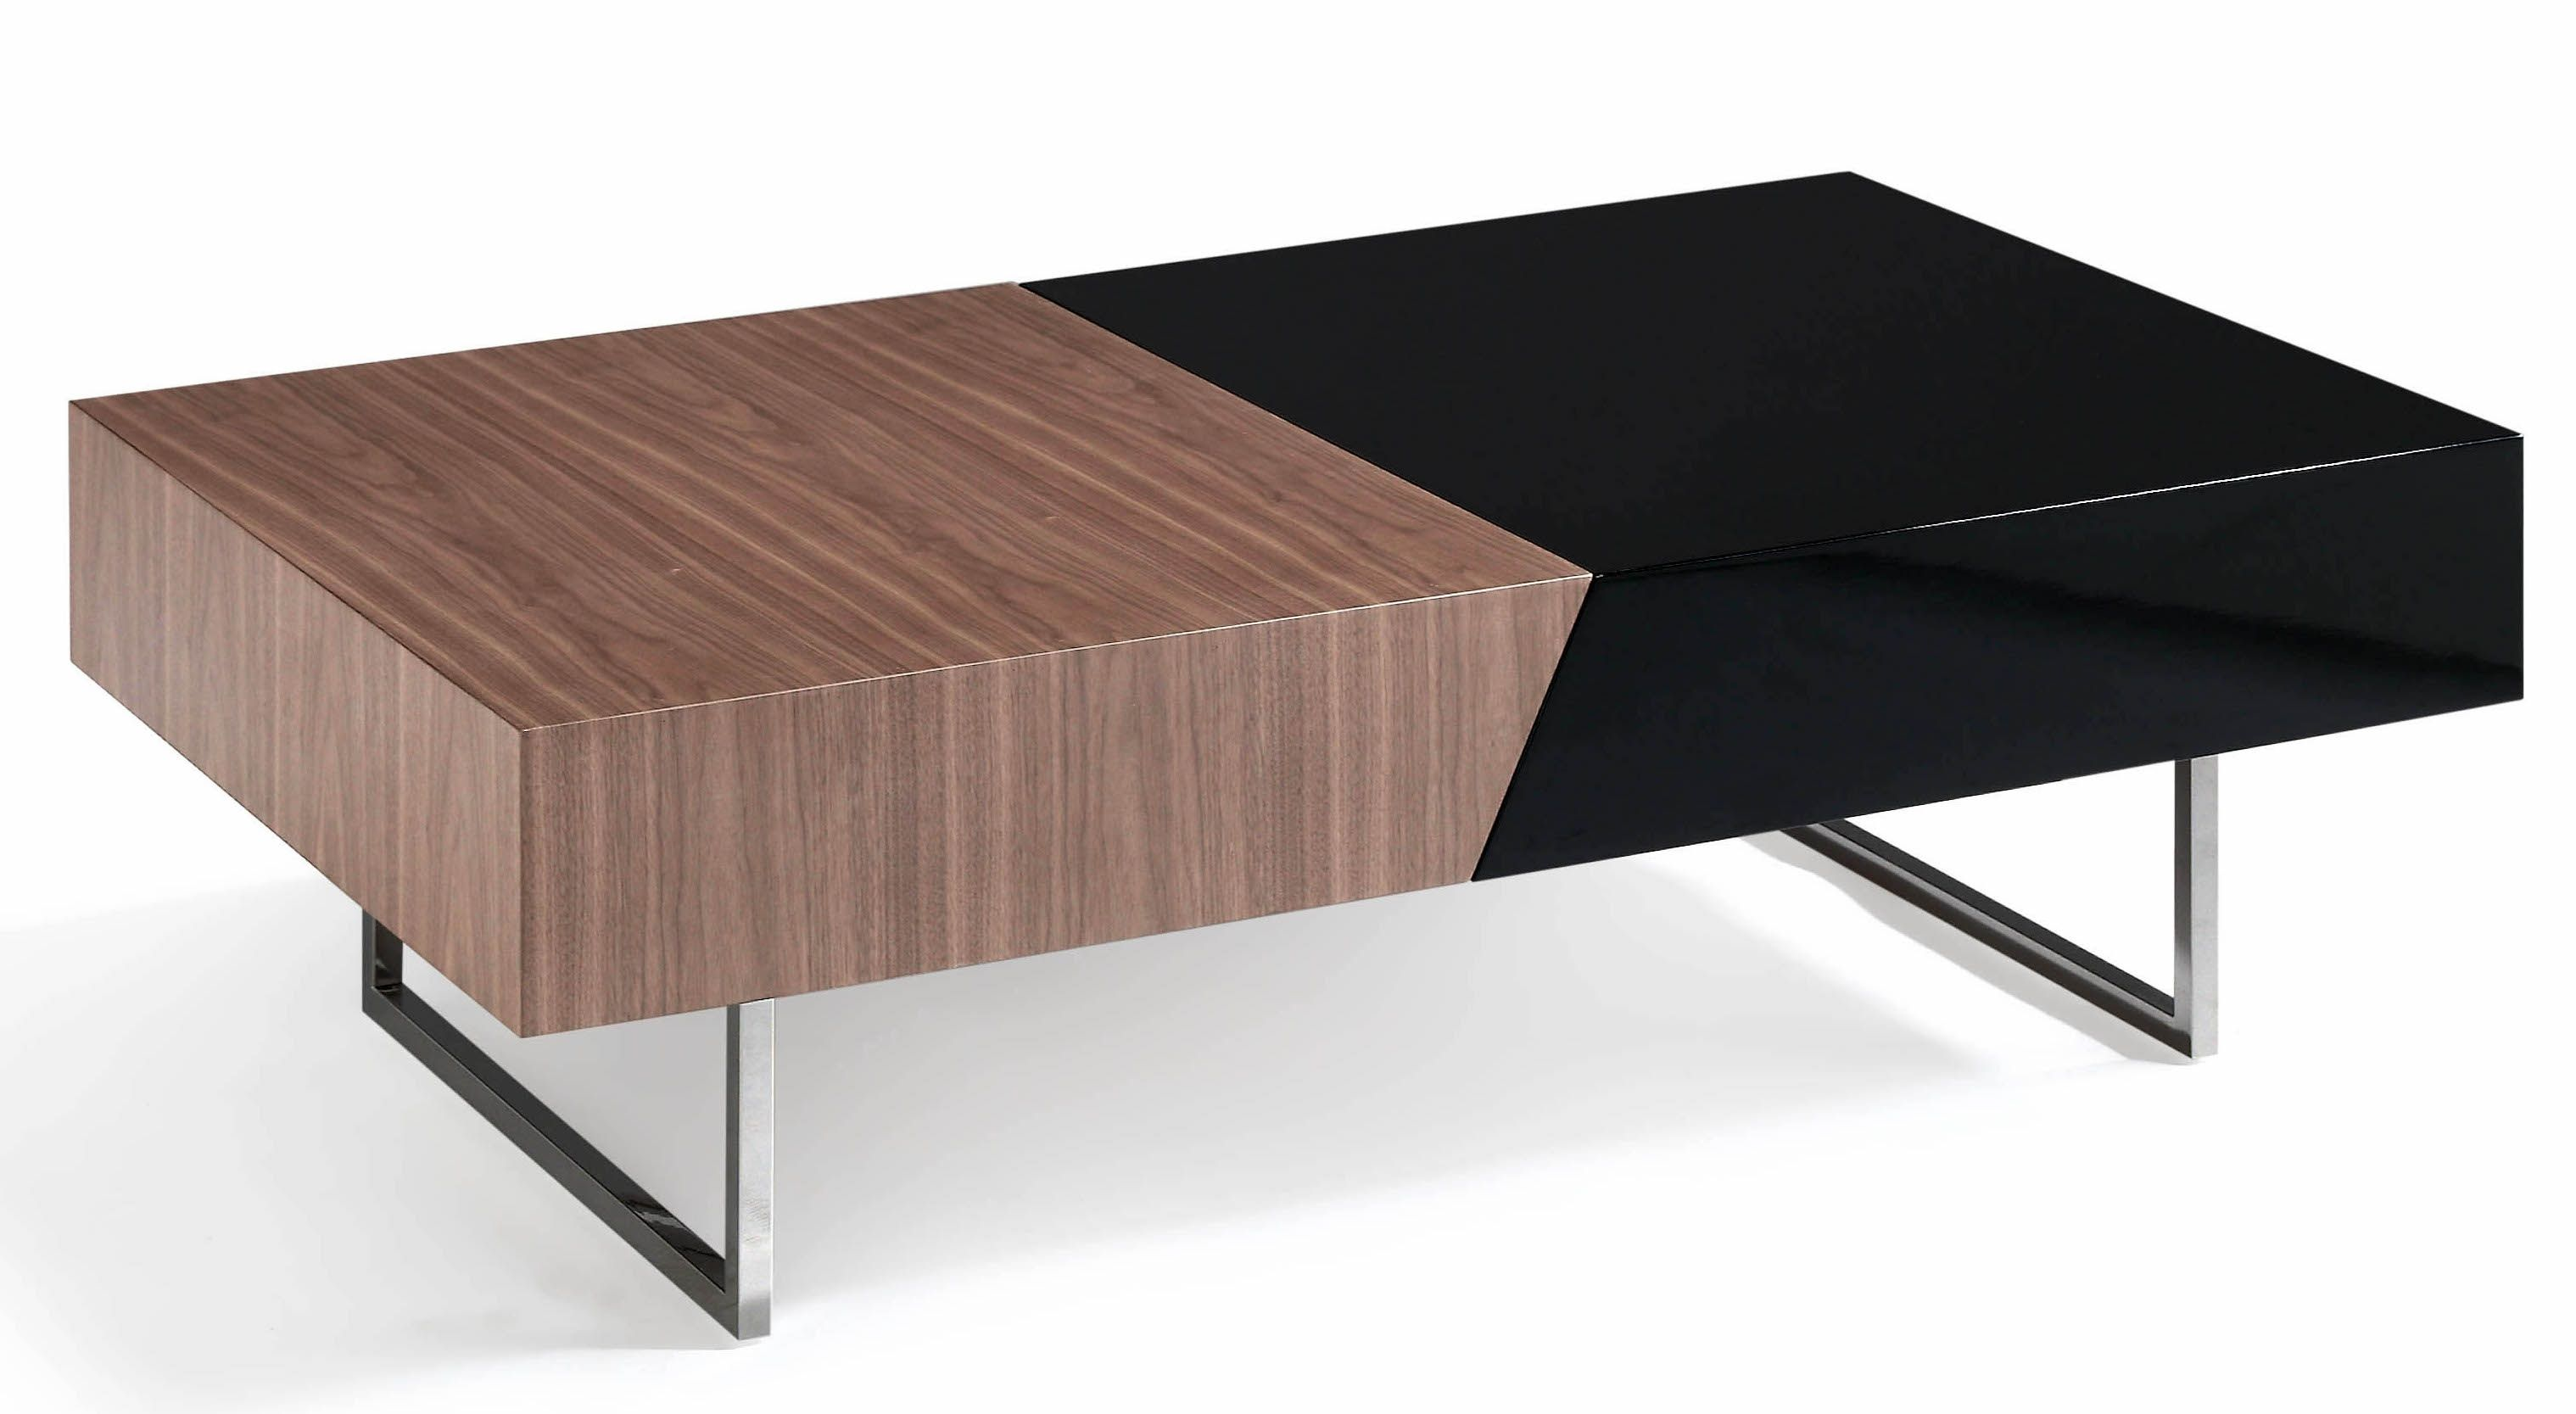 Table Basse Rectangulaire Regate Ph Collection Tables Basses Design Table Basse Rectangulaire Table Basse Table Basse Design